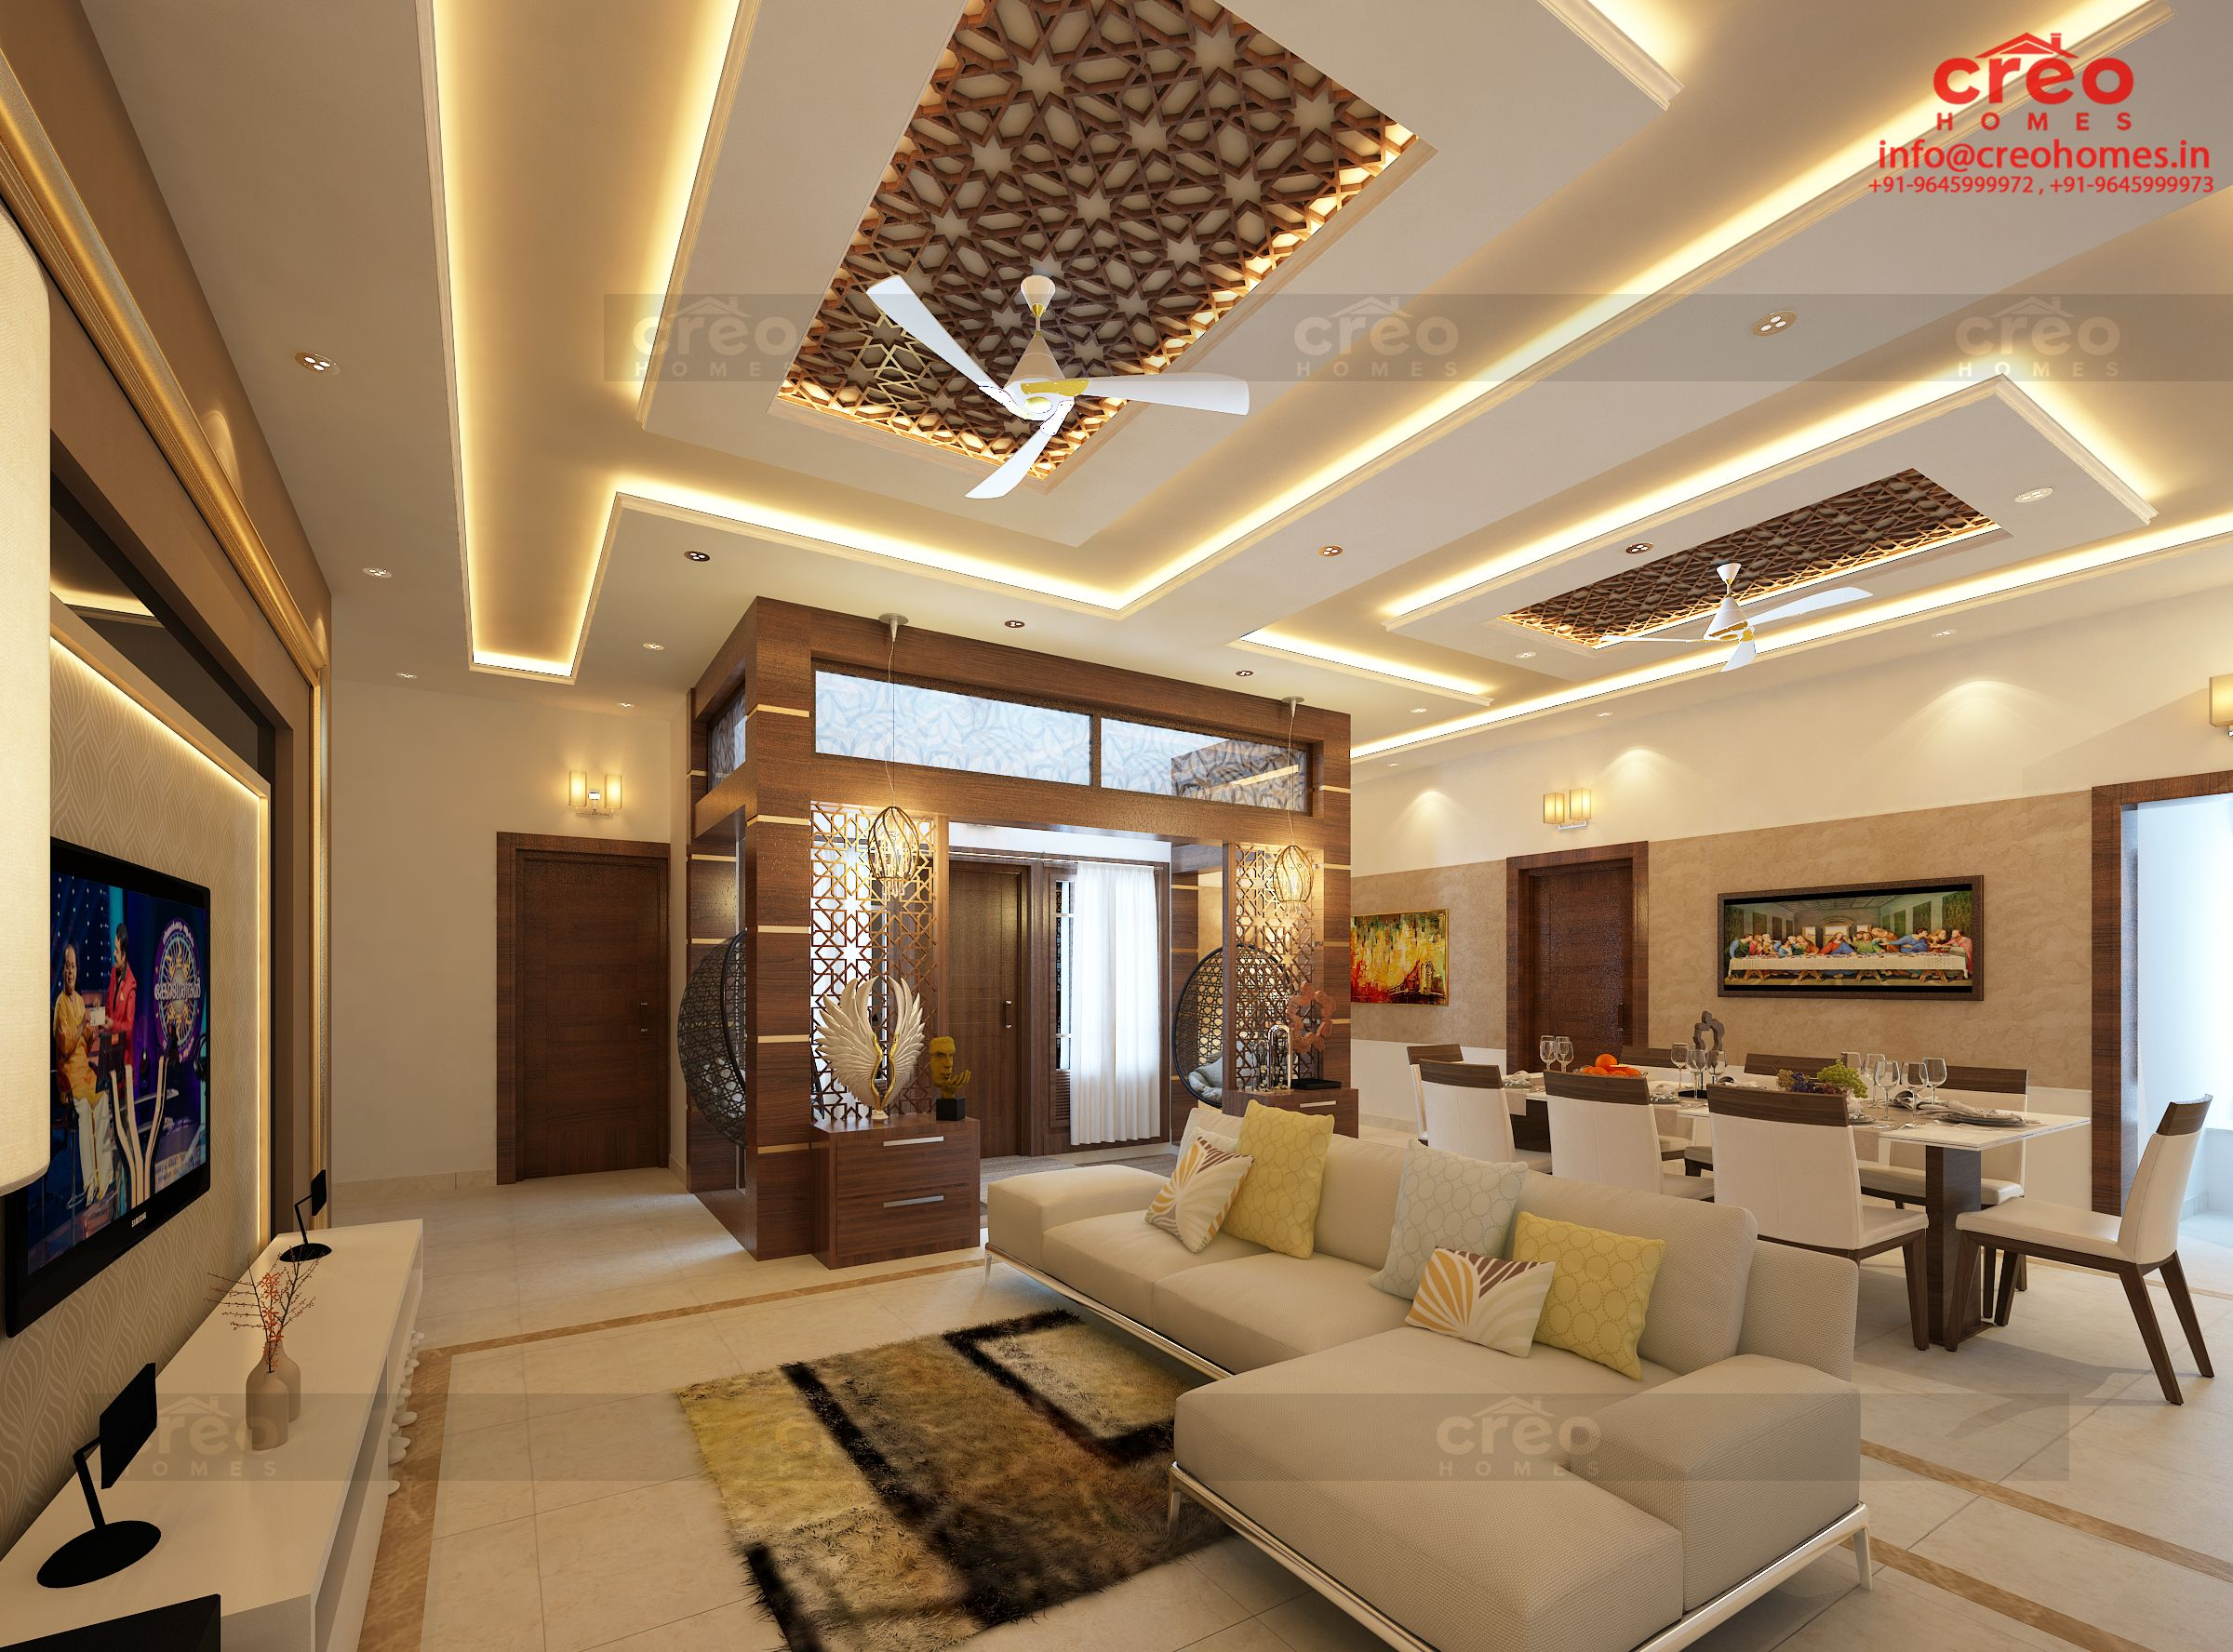 Creo Homes The Best Interior Designers In Kochi Has Been Recognized Nationwide For Its Excellence In Construc Kerala House Design Interior Designers Interior